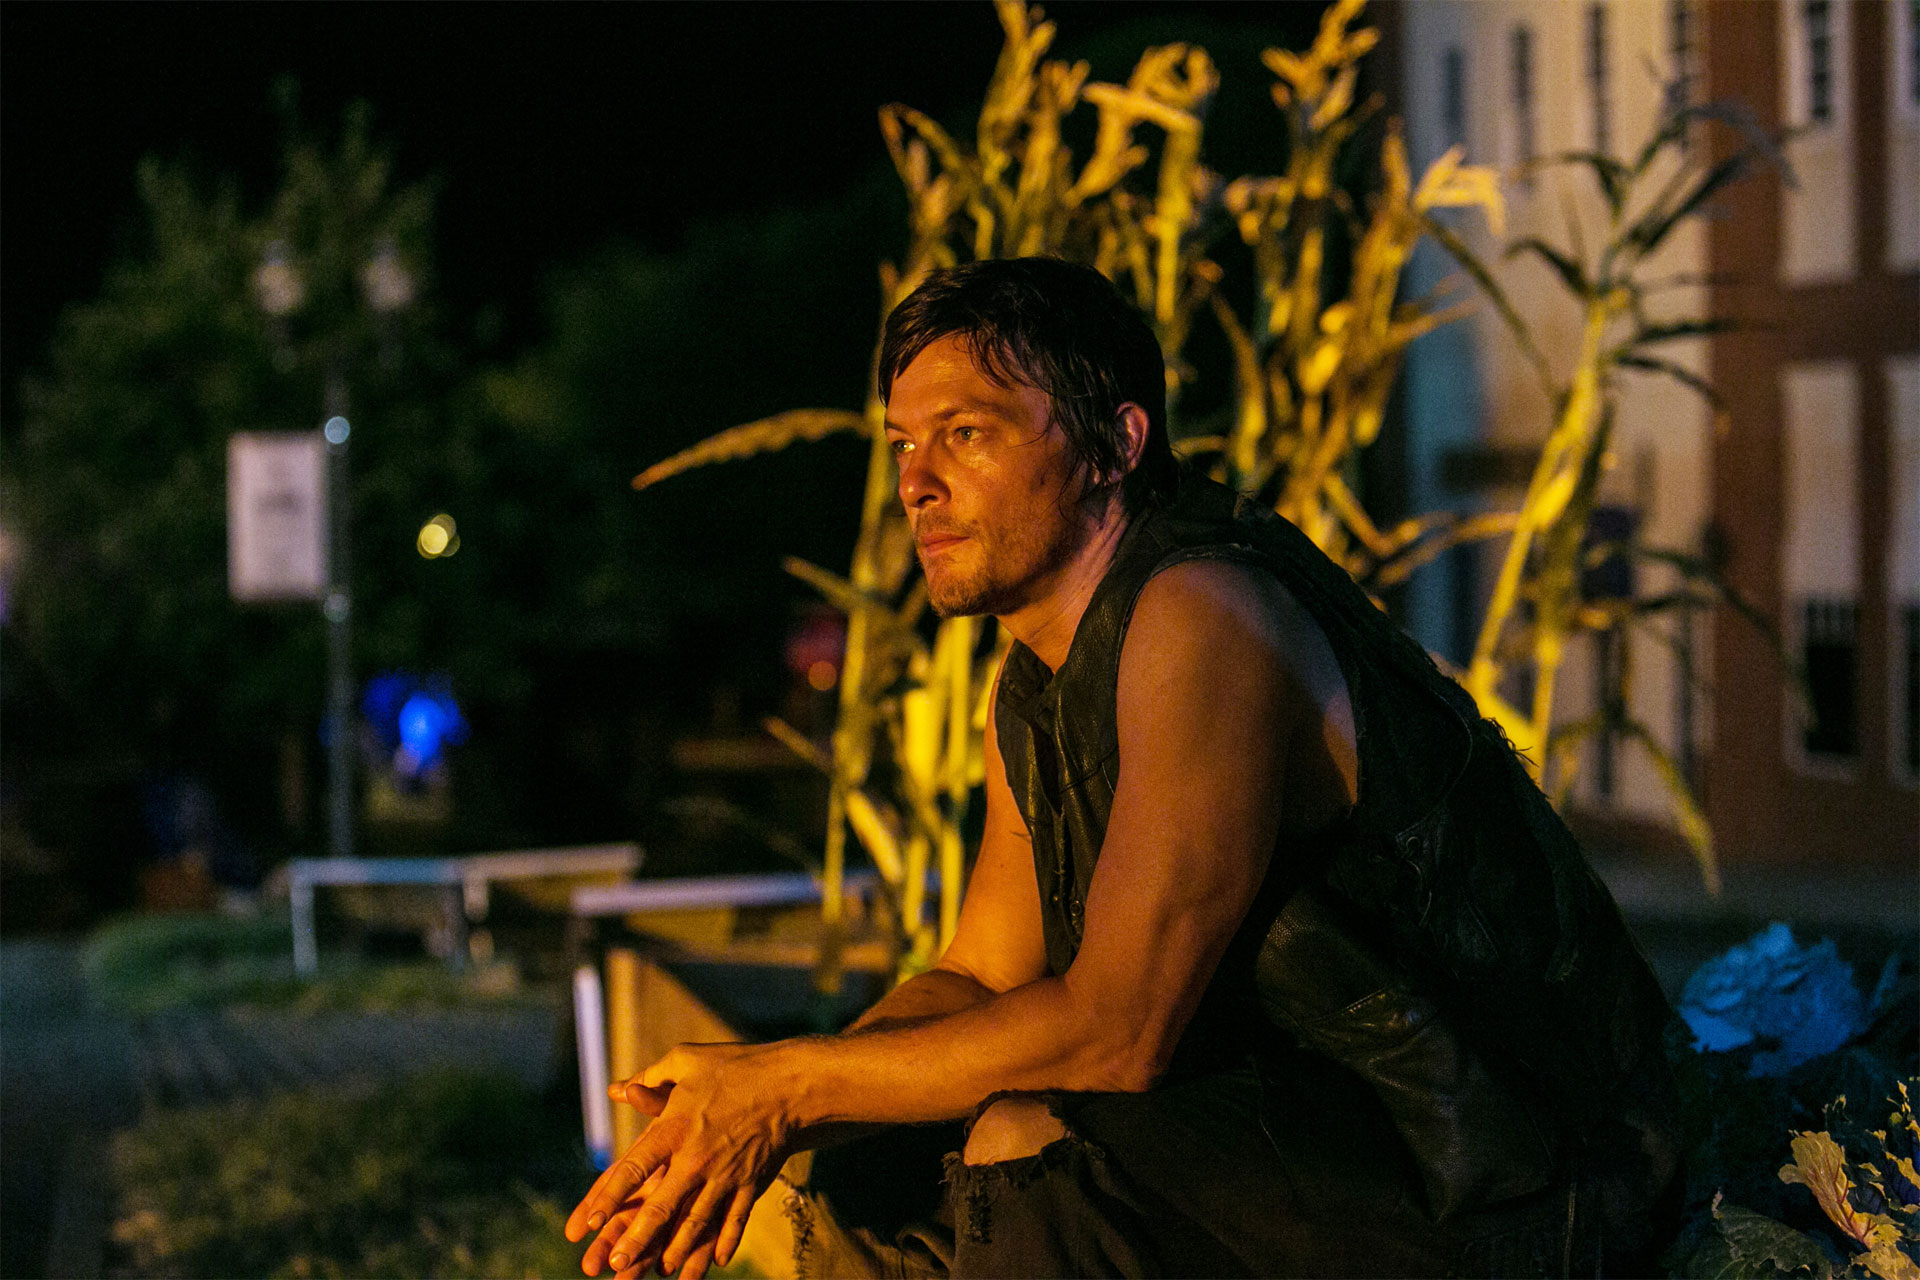 The Walking Dead Season 3 Midseason Finale Made to Suffer High-Res Images